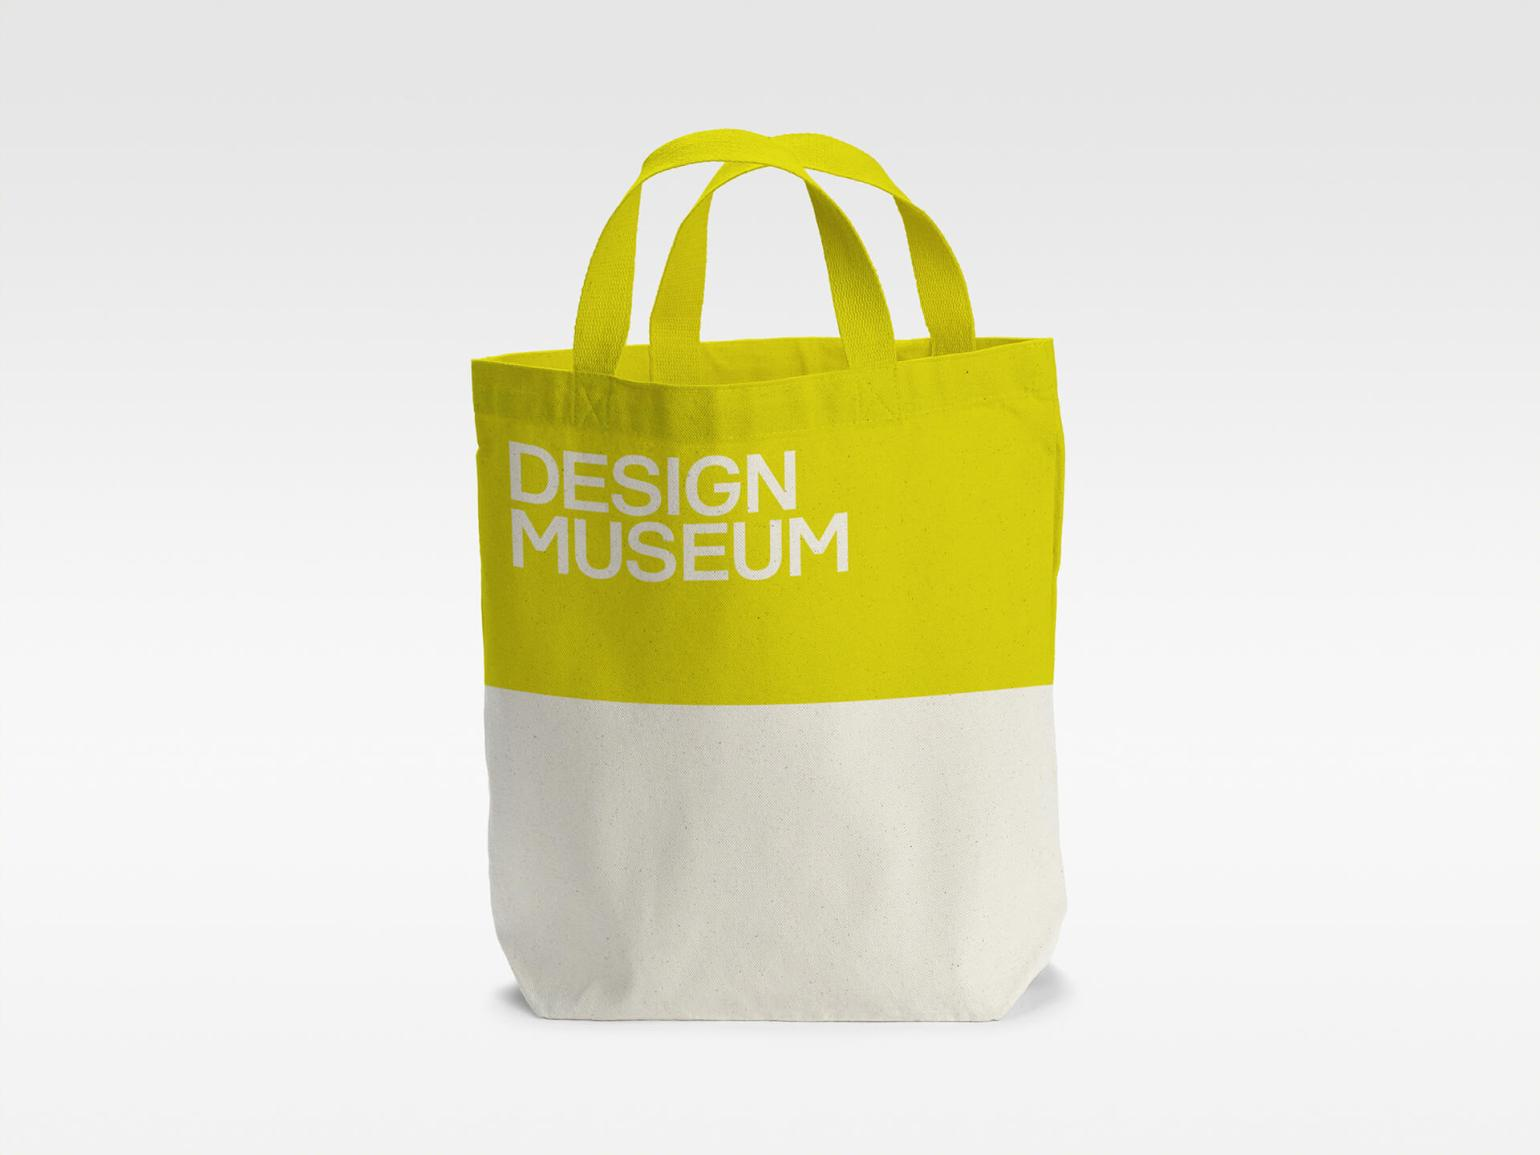 Design Museum Products 1920px 08